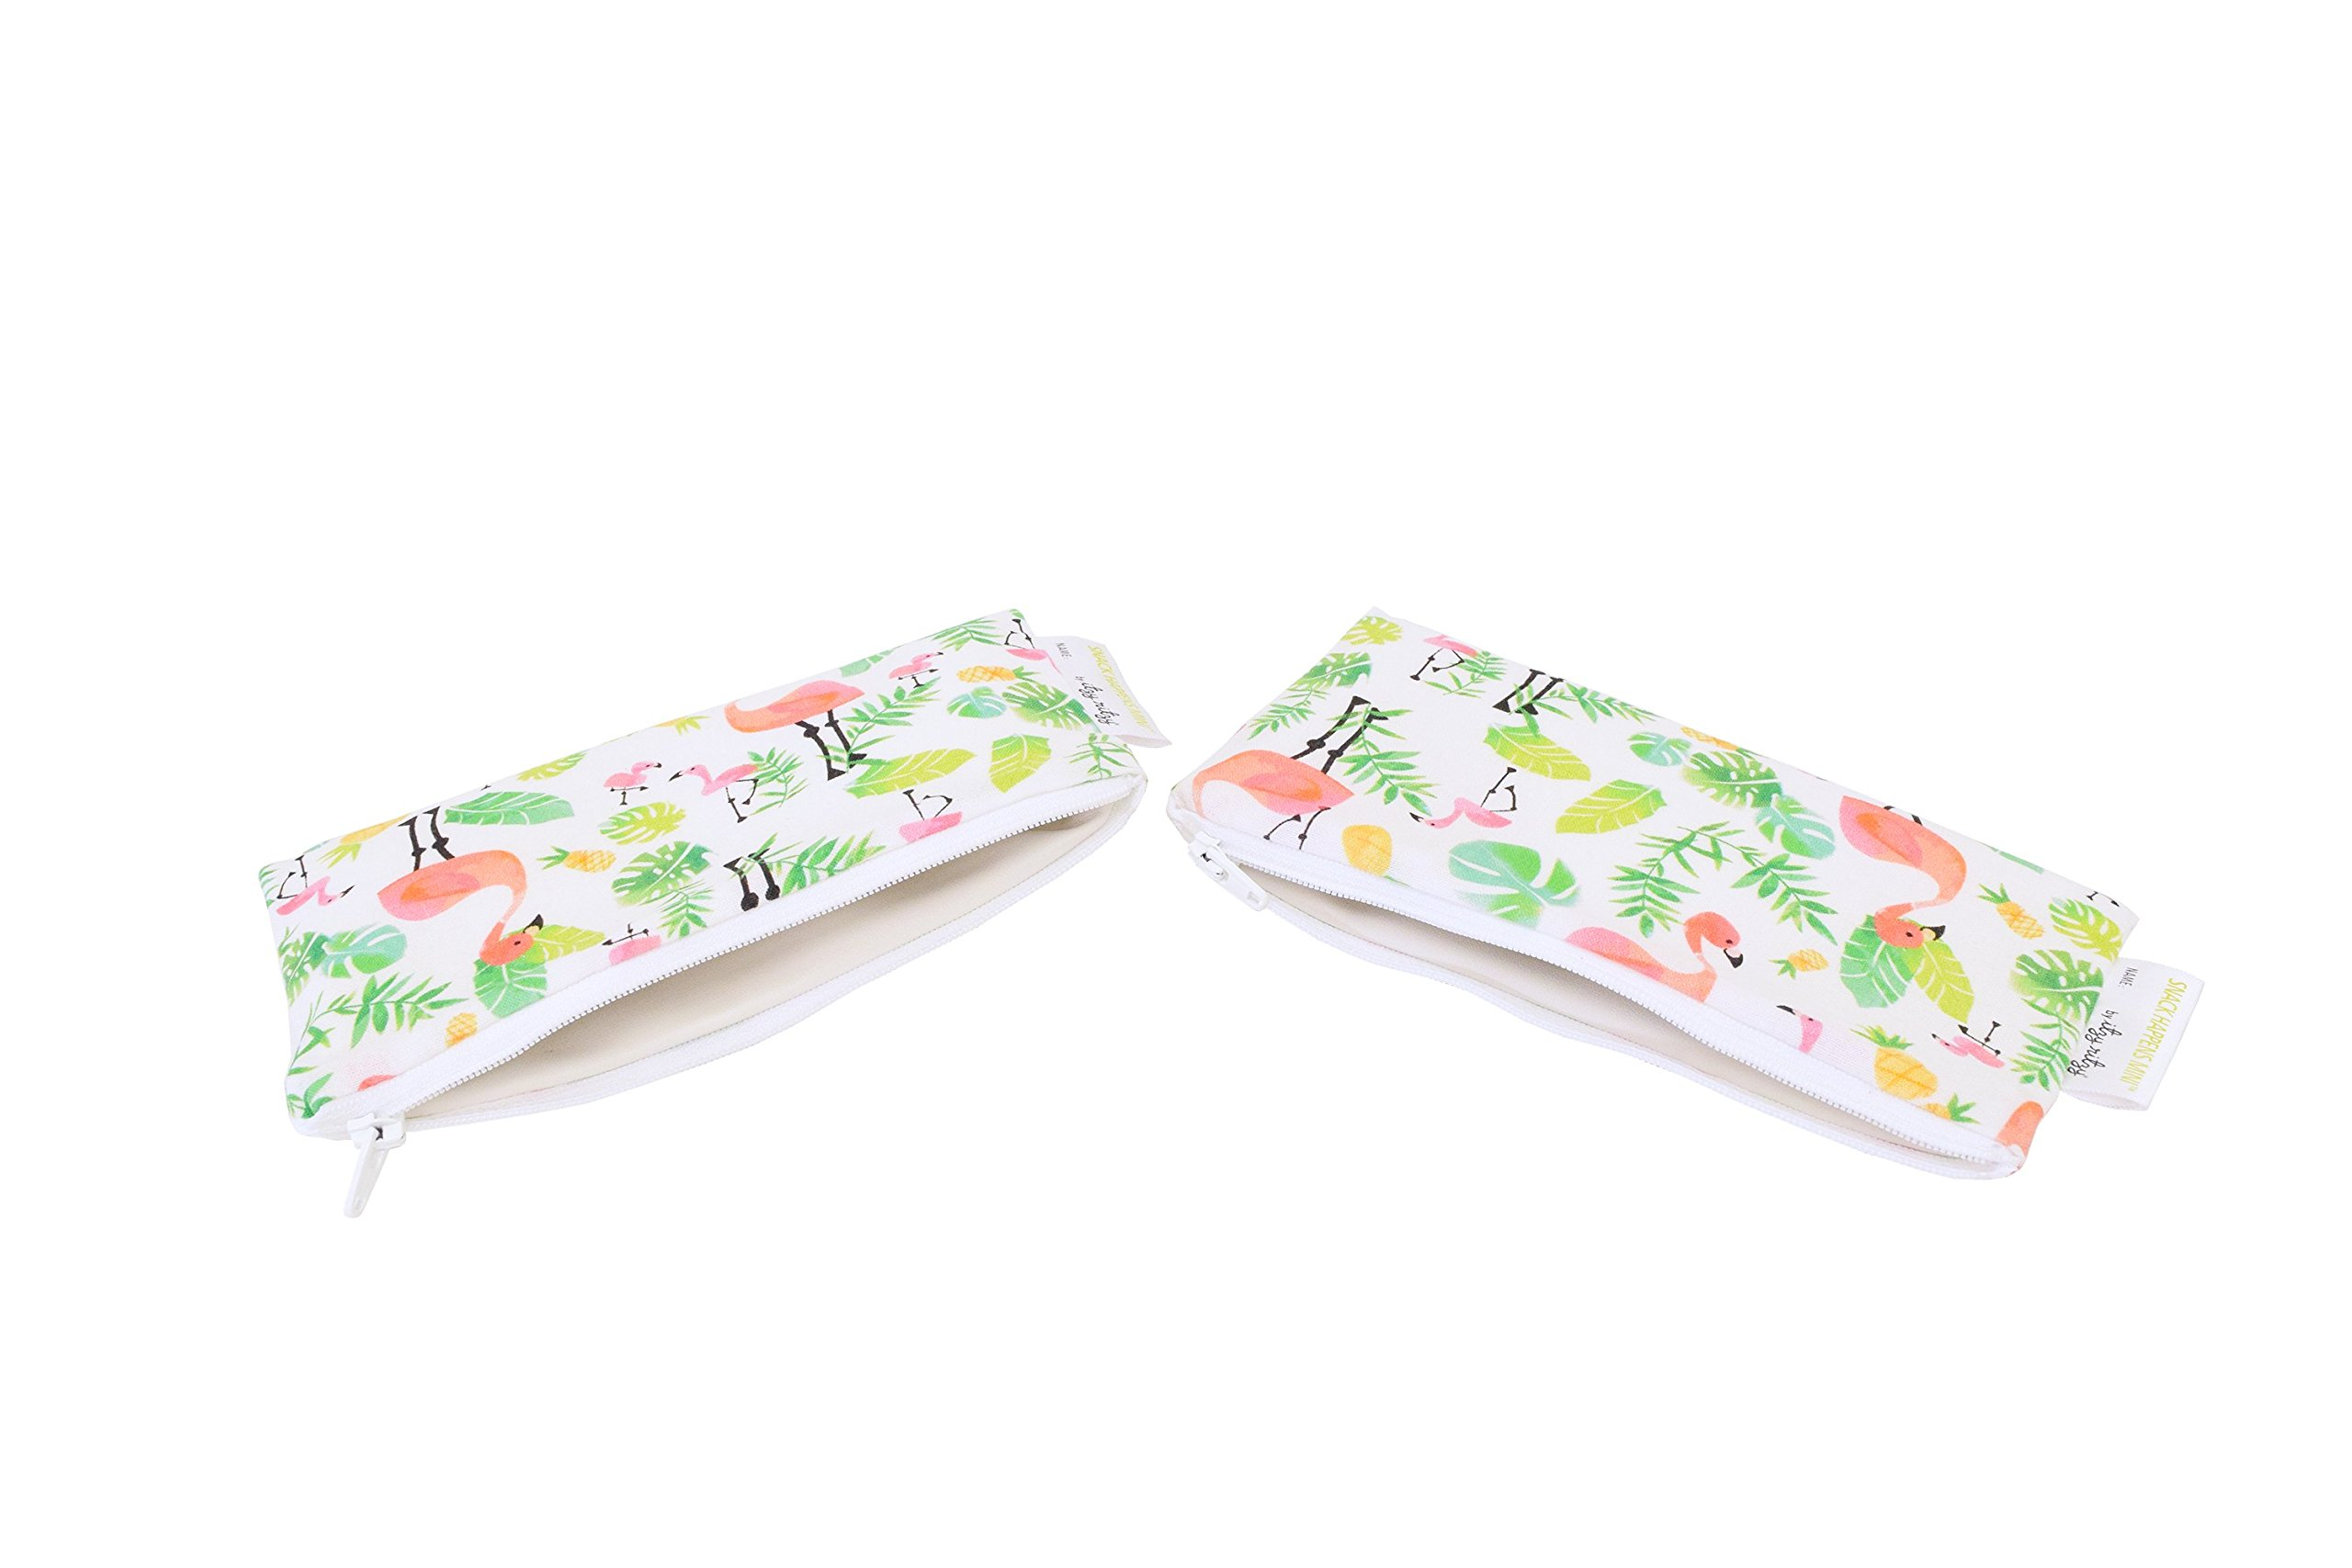 Itzy Ritzy Reusable Mini Snack Bags - 2-Pack of 3.5'' x 7'' BPA-Free Snack Bags are Food Safe & Washable for Storing Snacks, Pacifiers and Makeup in a Diaper Bag, Purse or Travel Bag, Flamingo Flock by Itzy Ritzy